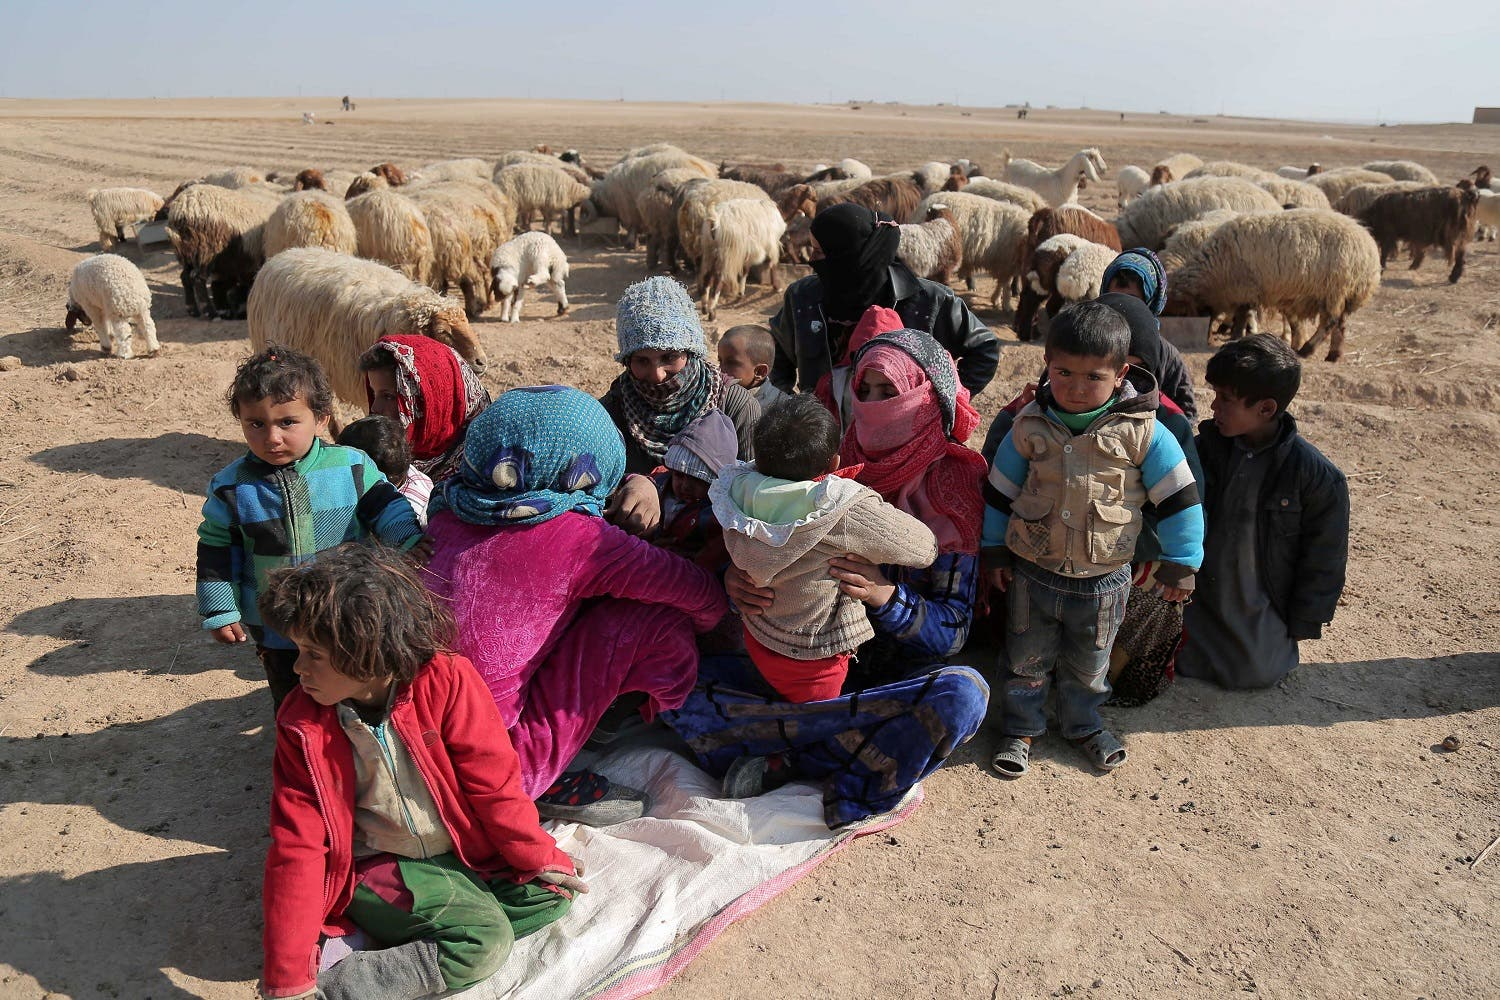 Internally displaced Syrians who fled Raqqa city rest near sheep in northern Raqqa province, Syria February 6, 2017. REUTERS